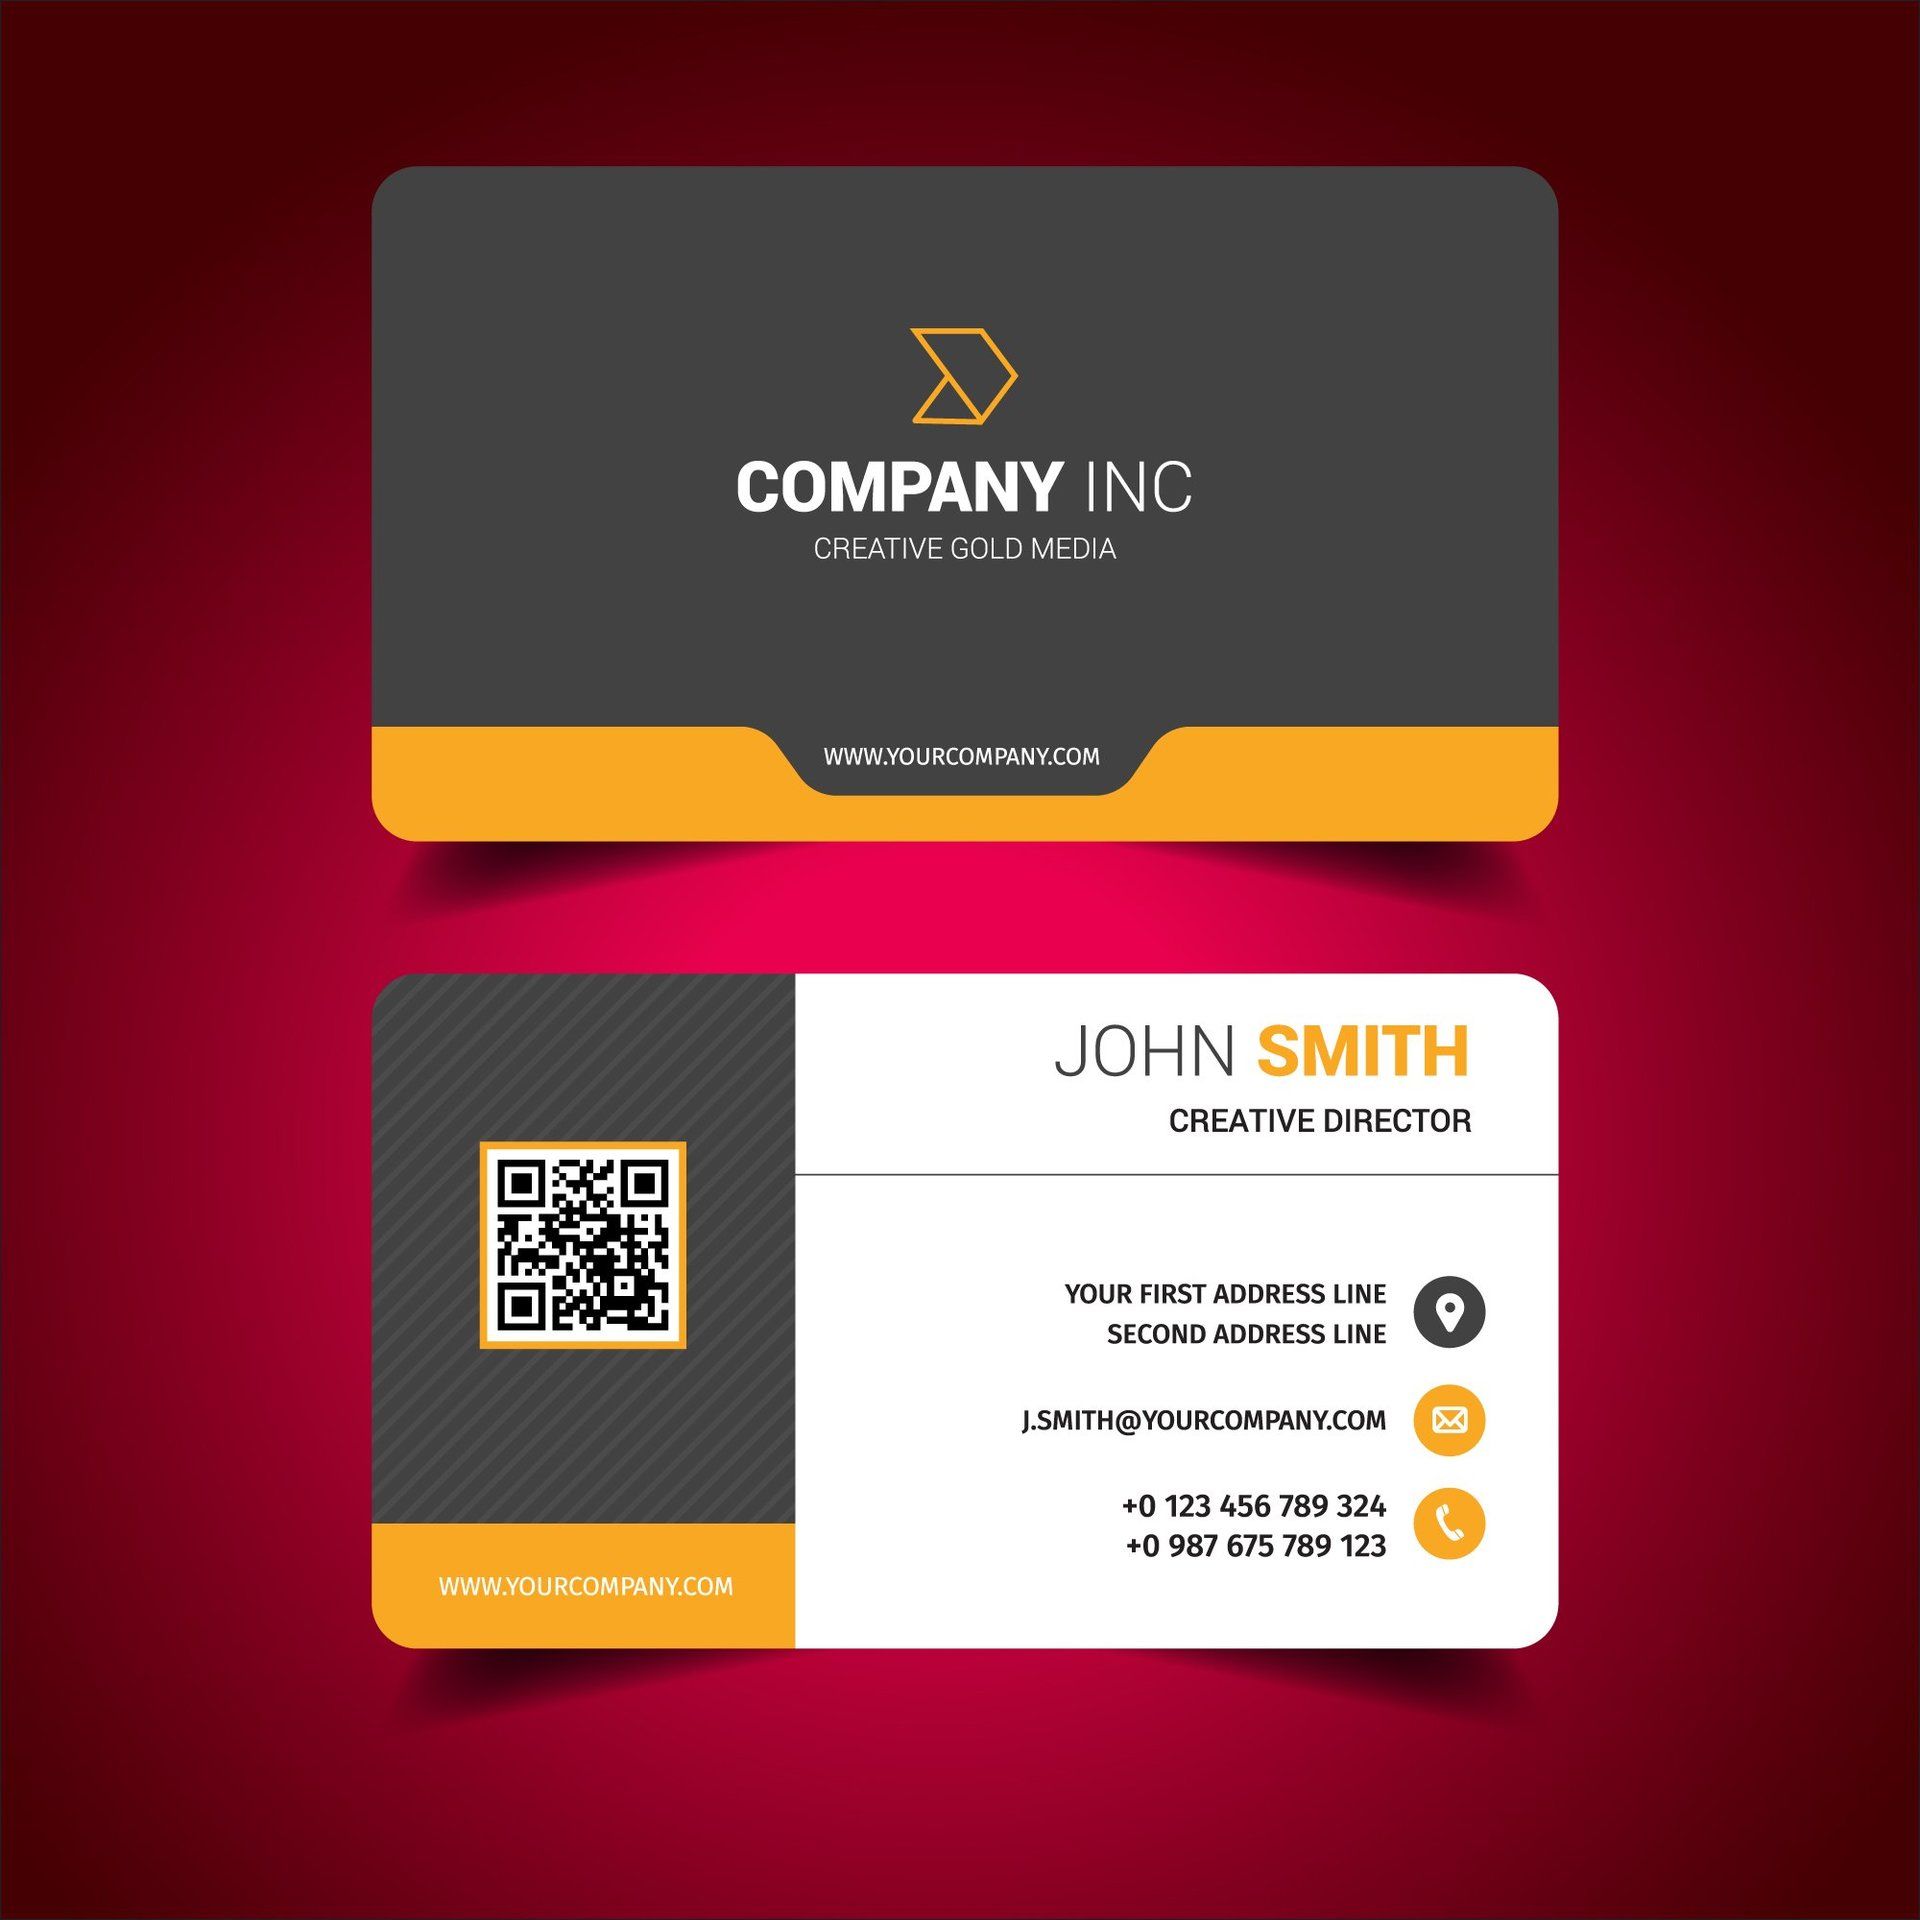 Business Cards Zoozle Image Collections Card Design And Printing Puchong Images